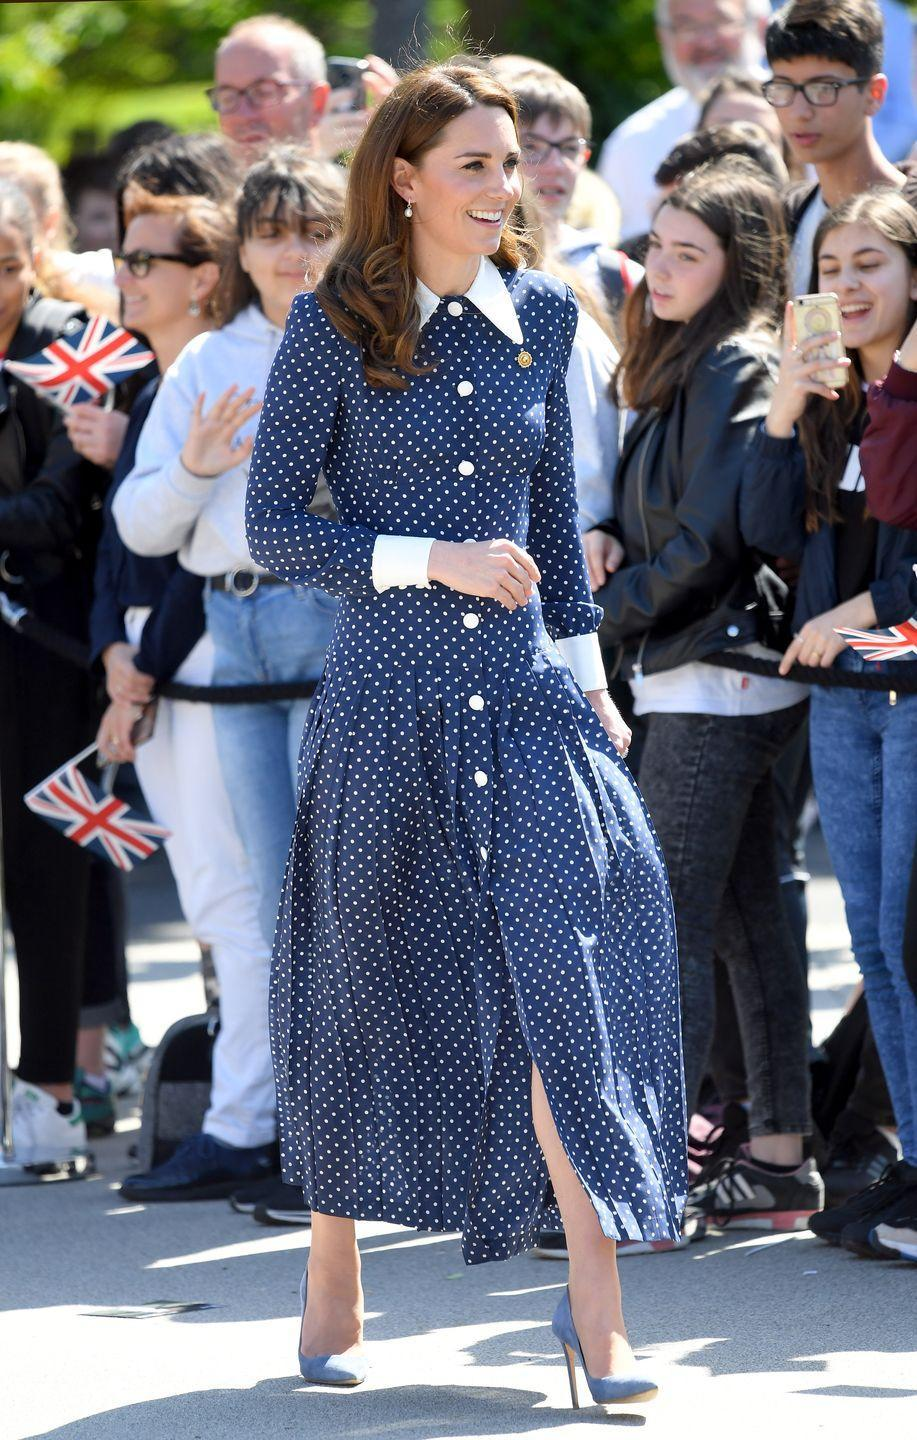 """<p>During a visit to Bletchley Park—the WWII-era facility where codebreakers, including Kate's grandmother, worked to decipher Axis messages—<a href=""""https://www.townandcountrymag.com/style/fashion-trends/a27455668/kate-middleton-alessandra-rich-dress-bletchley-park-d-day-75th-anniversary/"""" rel=""""nofollow noopener"""" target=""""_blank"""" data-ylk=""""slk:the Duchess rewore a navy polka-dot dress from Alessandra Rich"""" class=""""link rapid-noclick-resp"""">the Duchess rewore a navy polka-dot dress from Alessandra Rich</a>. She accessorized the dress with a pin designed to look like a gear from the Enigma machine, a device made at Bletchley Park.</p>"""